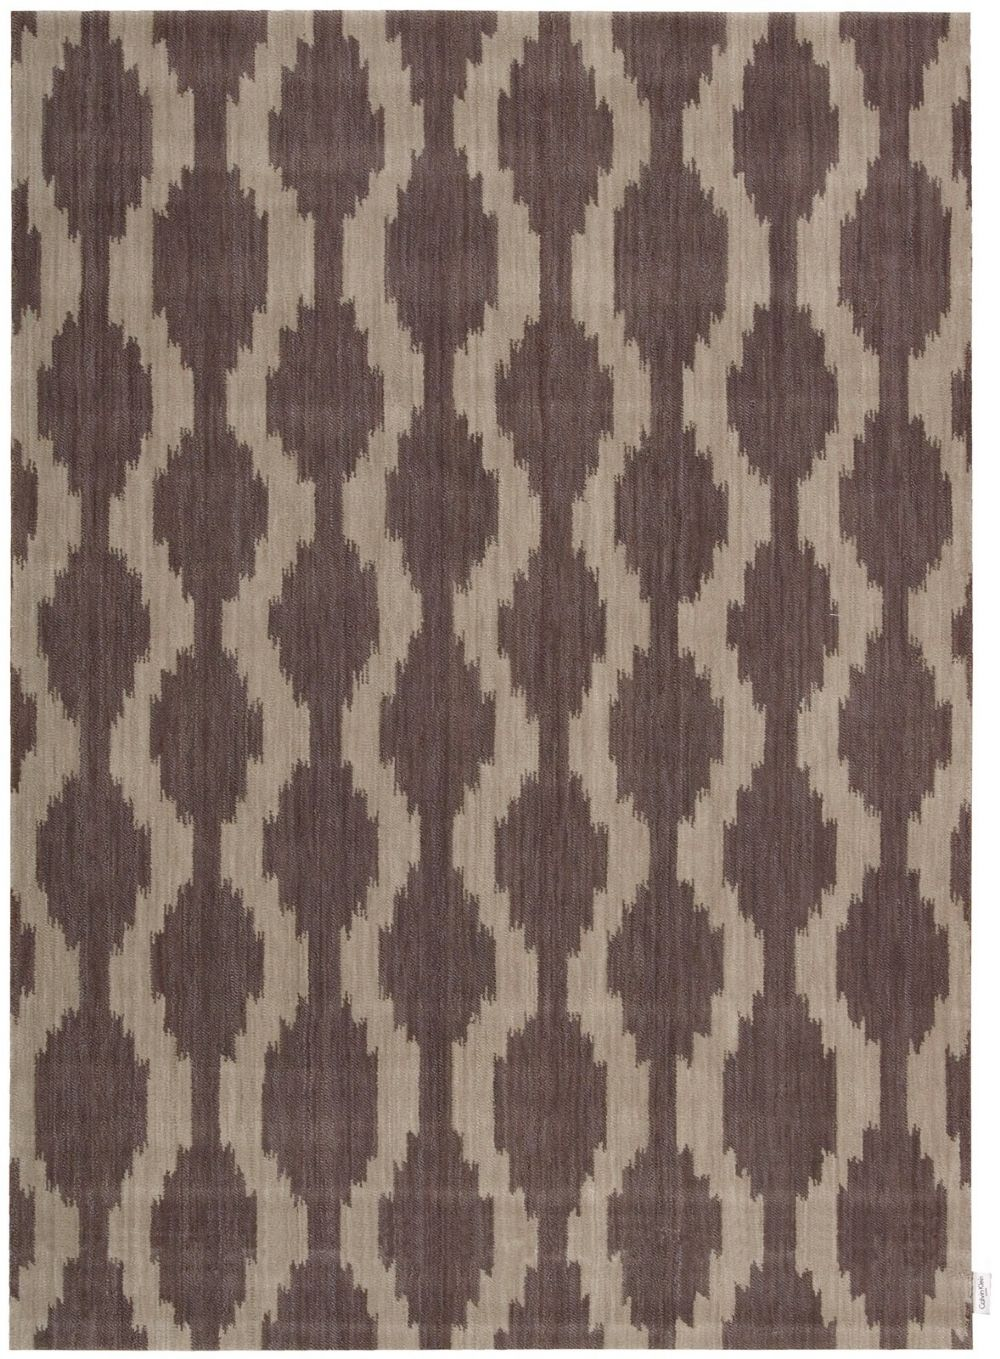 calvin klein ck19 - urban contemporary area rug collection